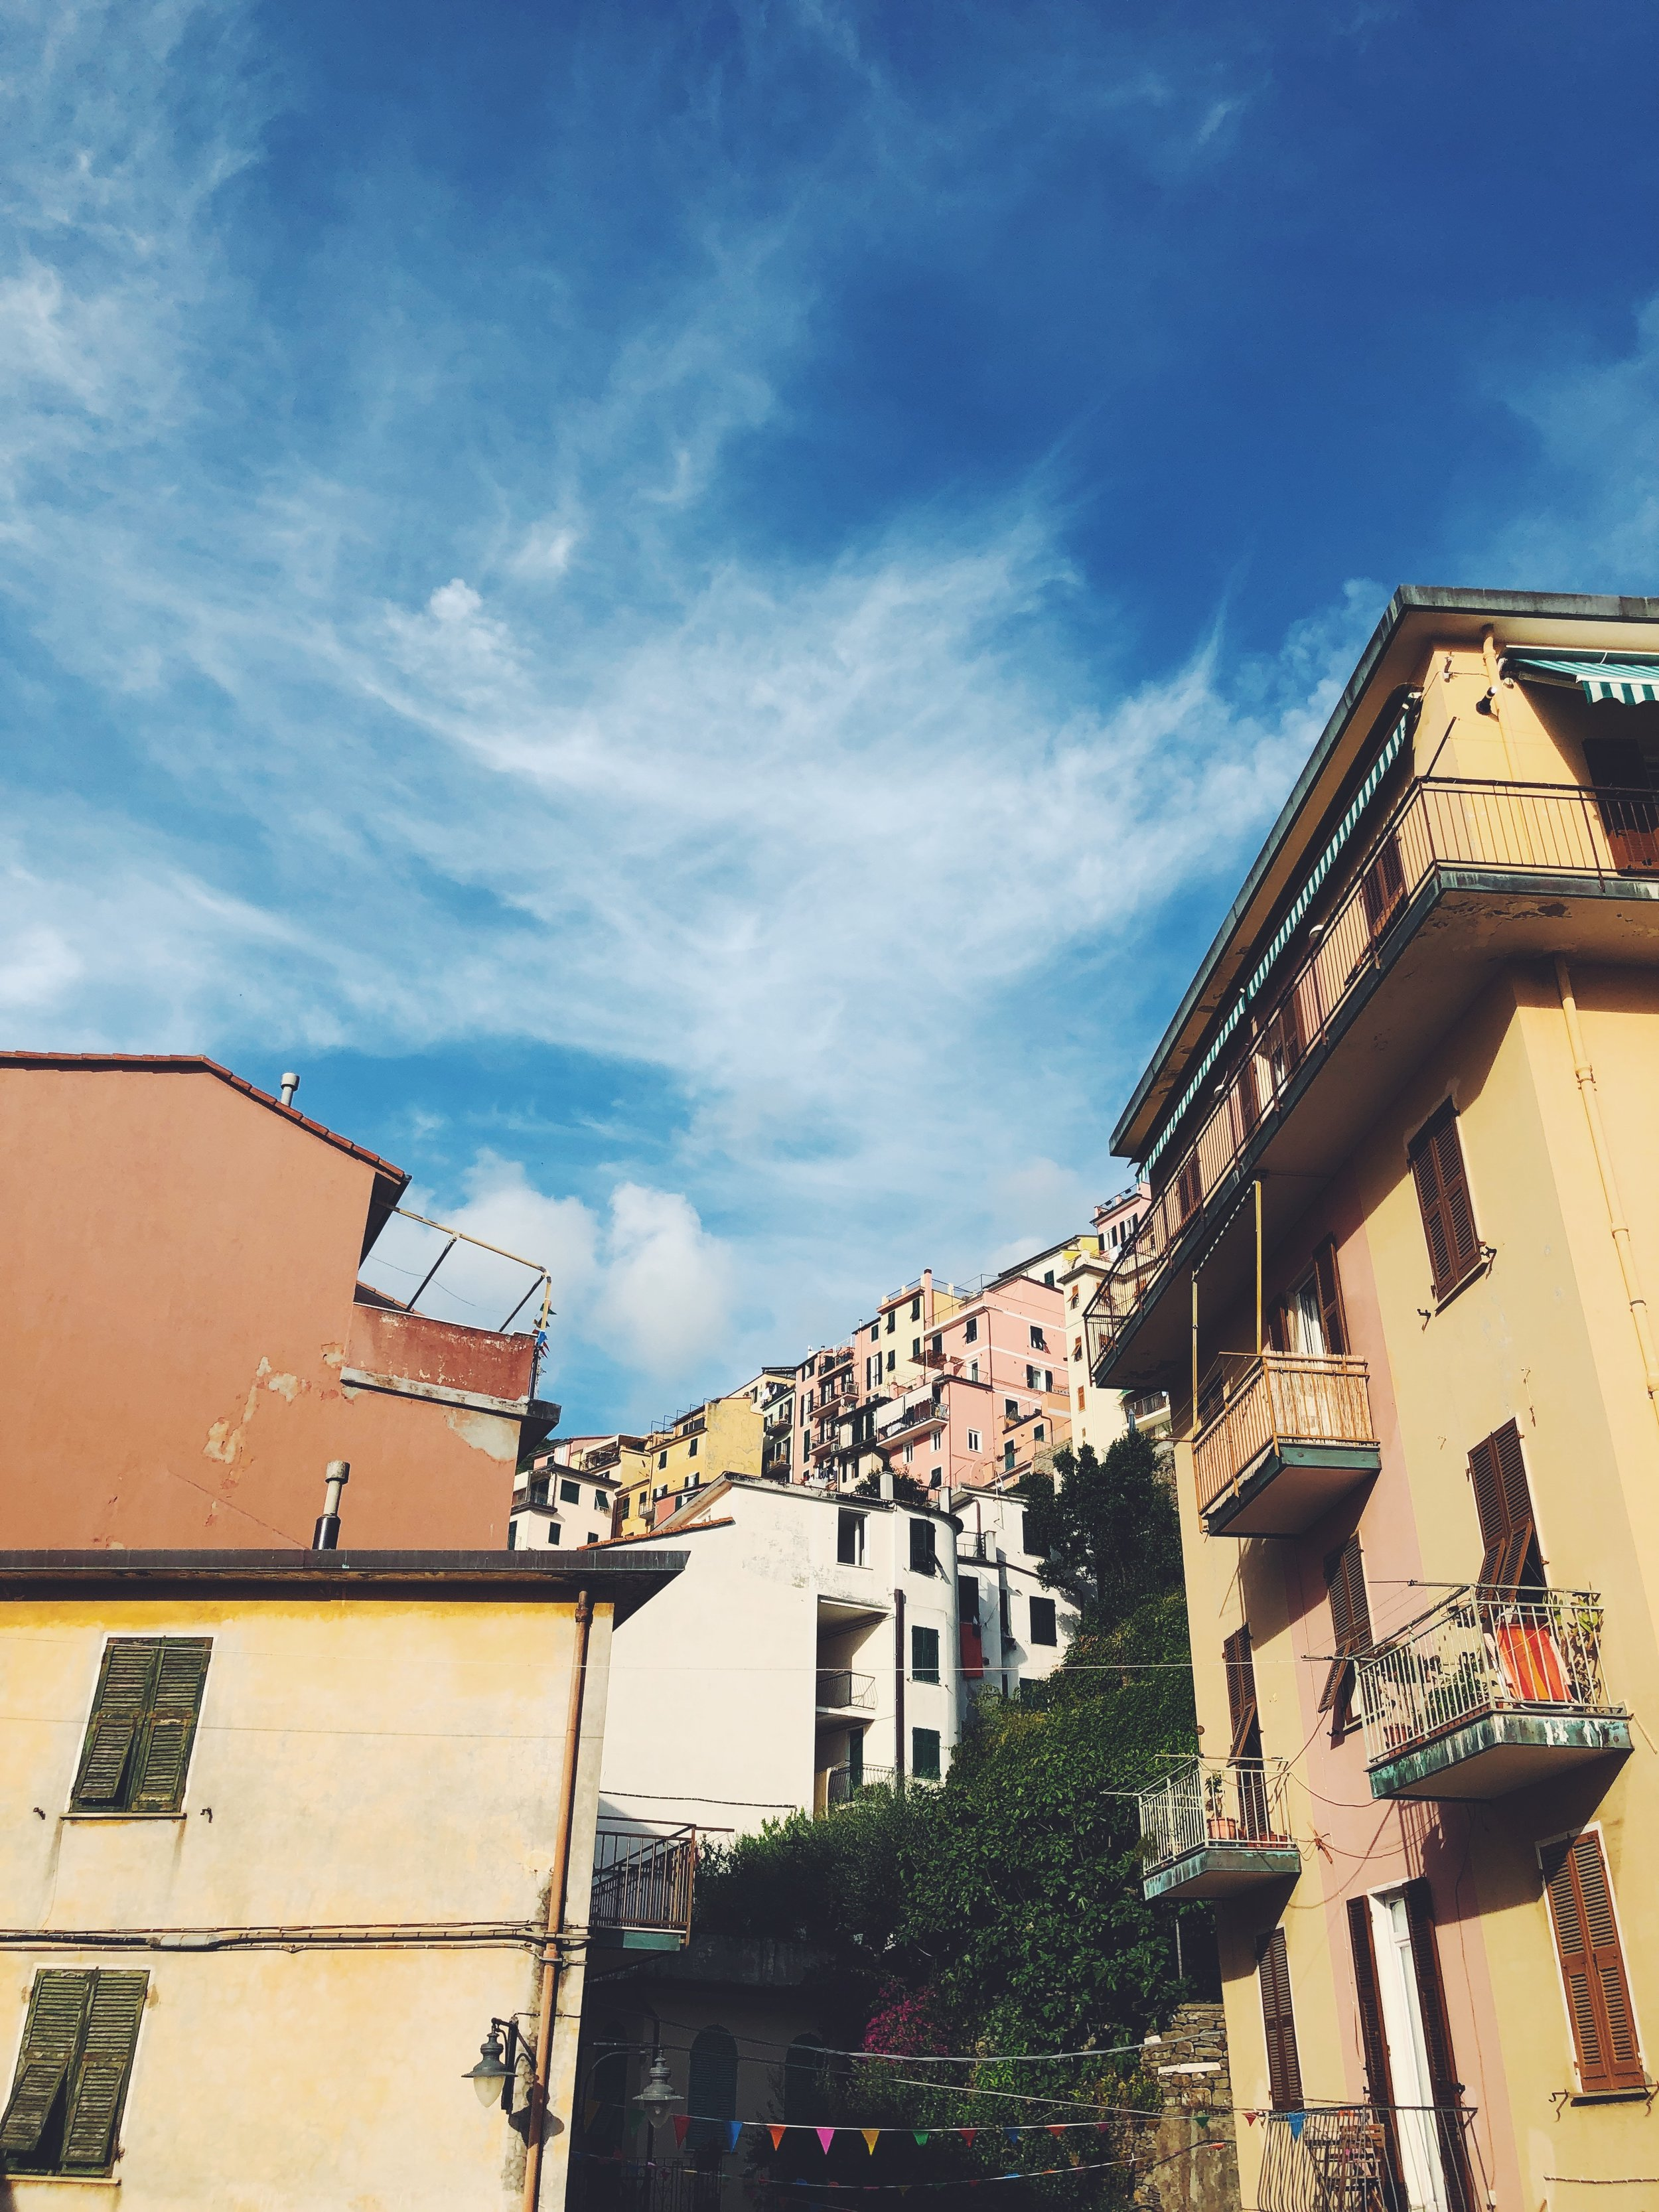 From the Streets of Manarola